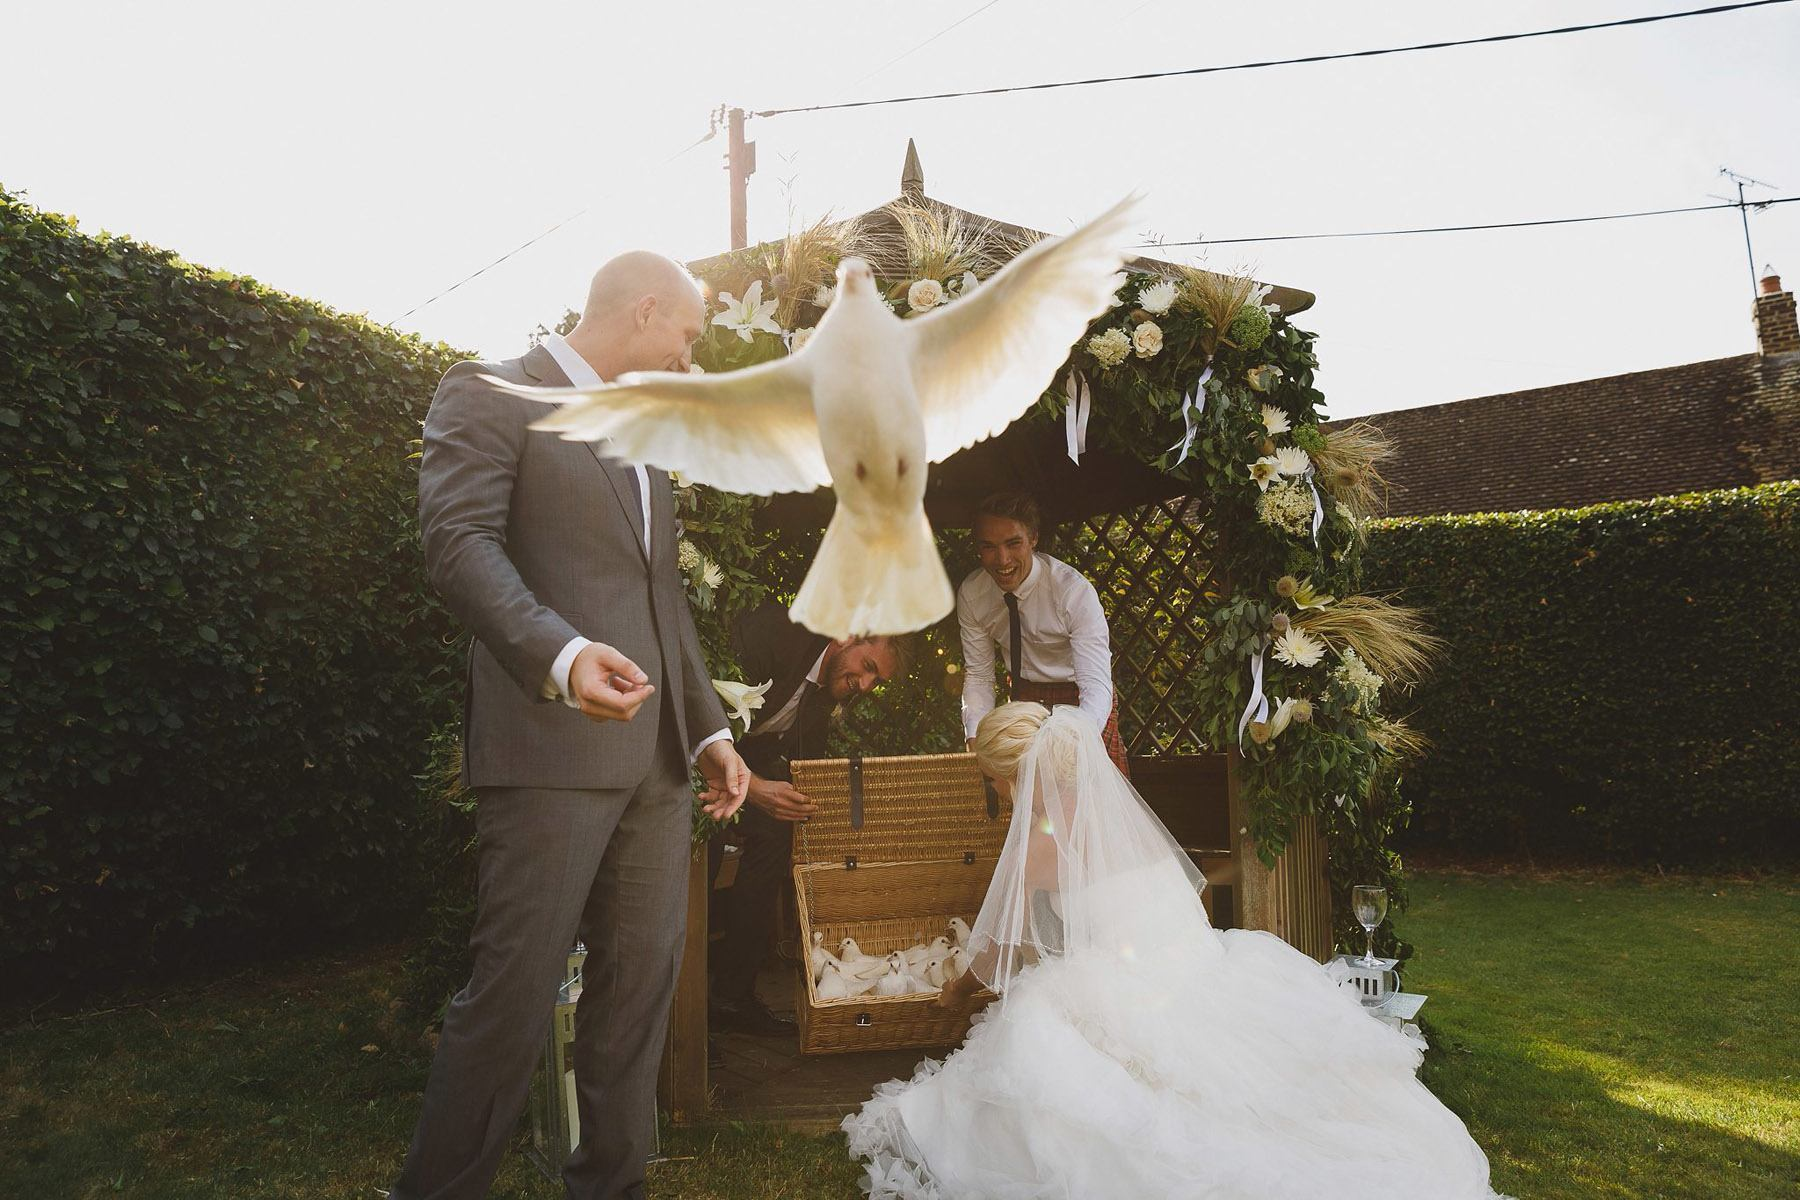 oxfordshire-wedding-photographer-045